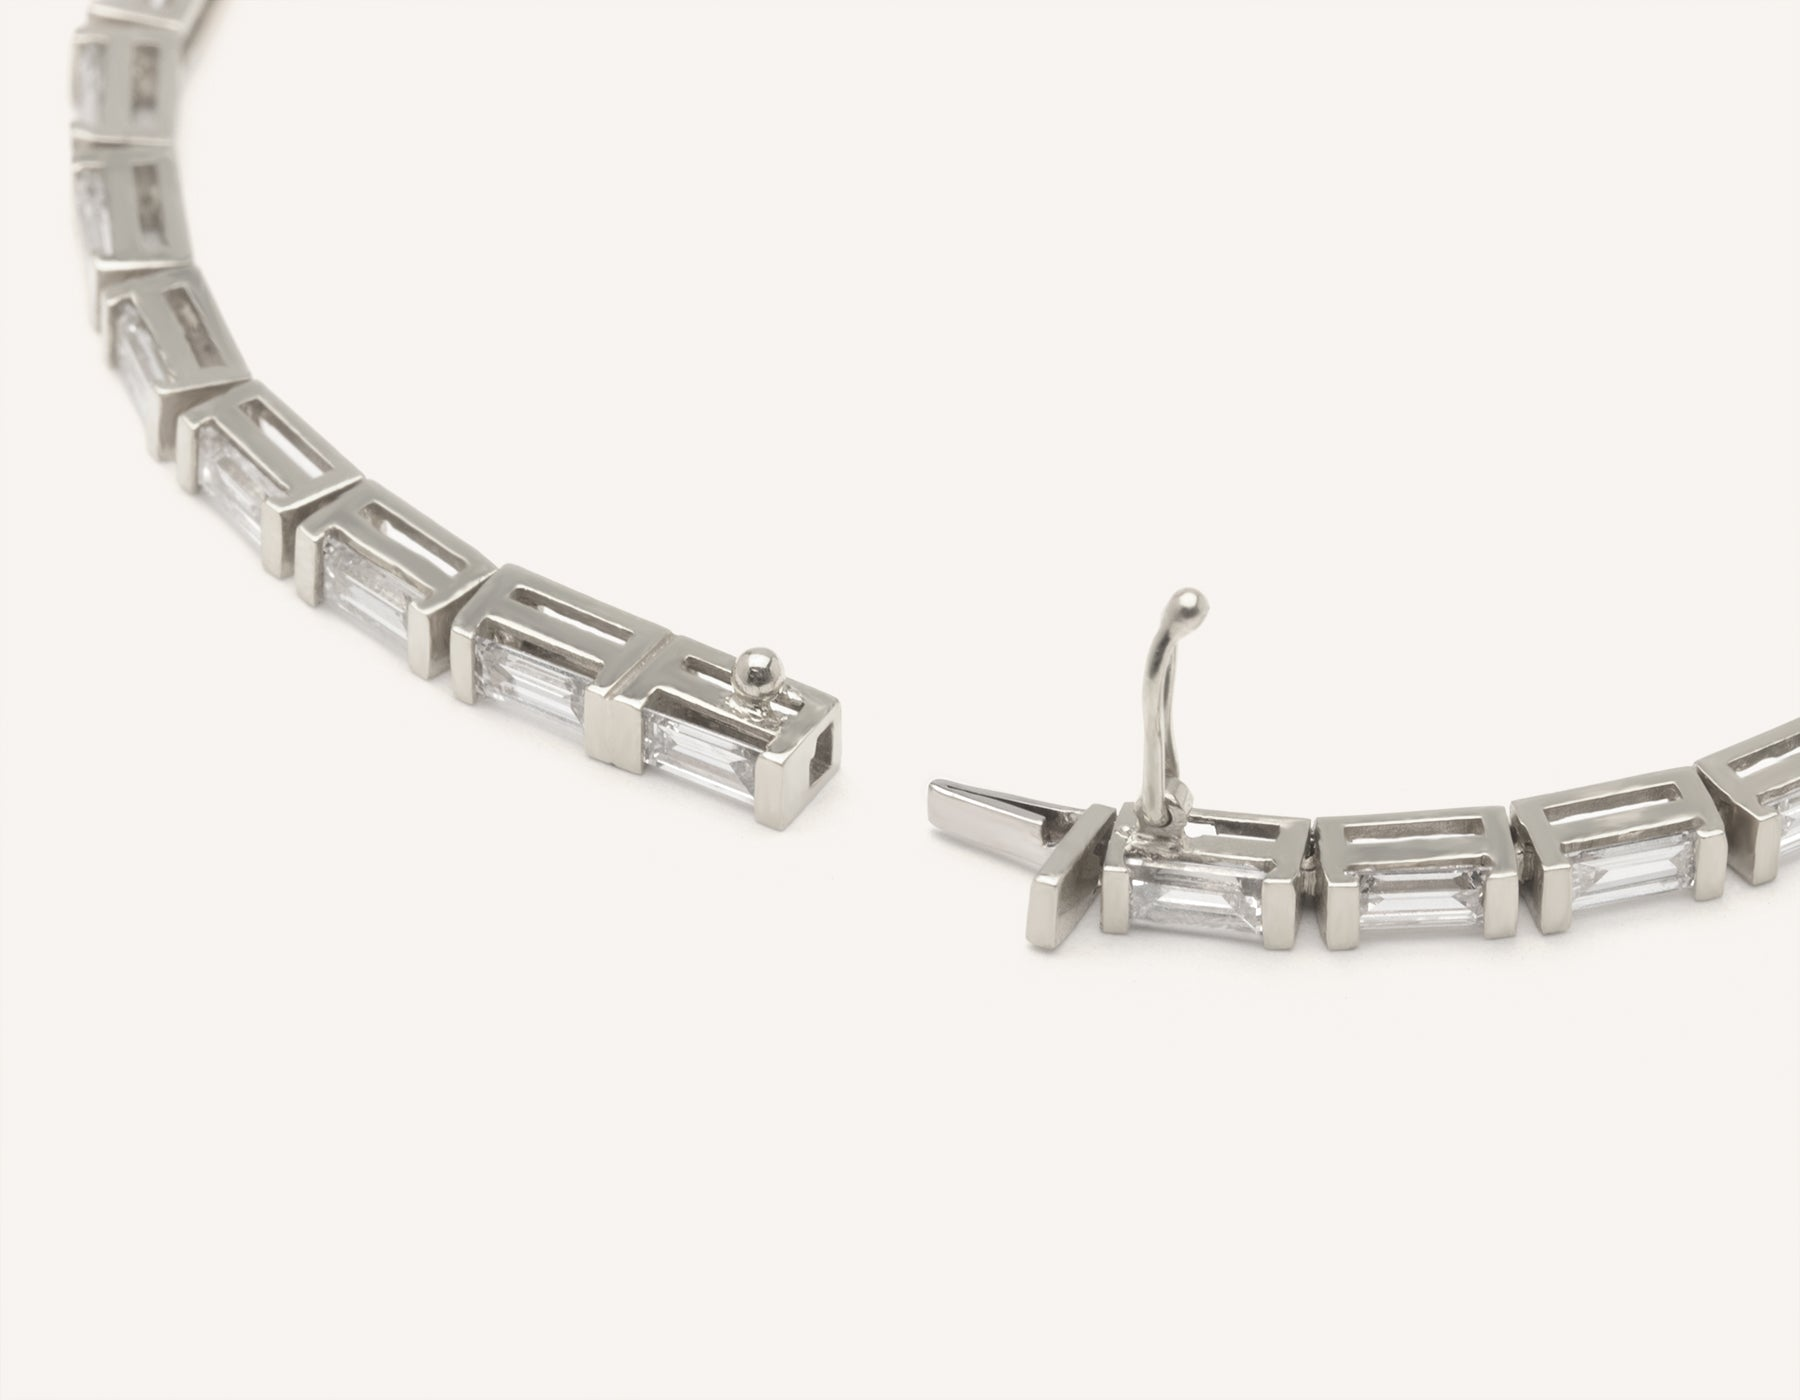 Sleek modern 18k solid gold Baguette Diamond Tennis Bracelet secure clasp handcrafted by Vrai & Oro, 18K White Gold